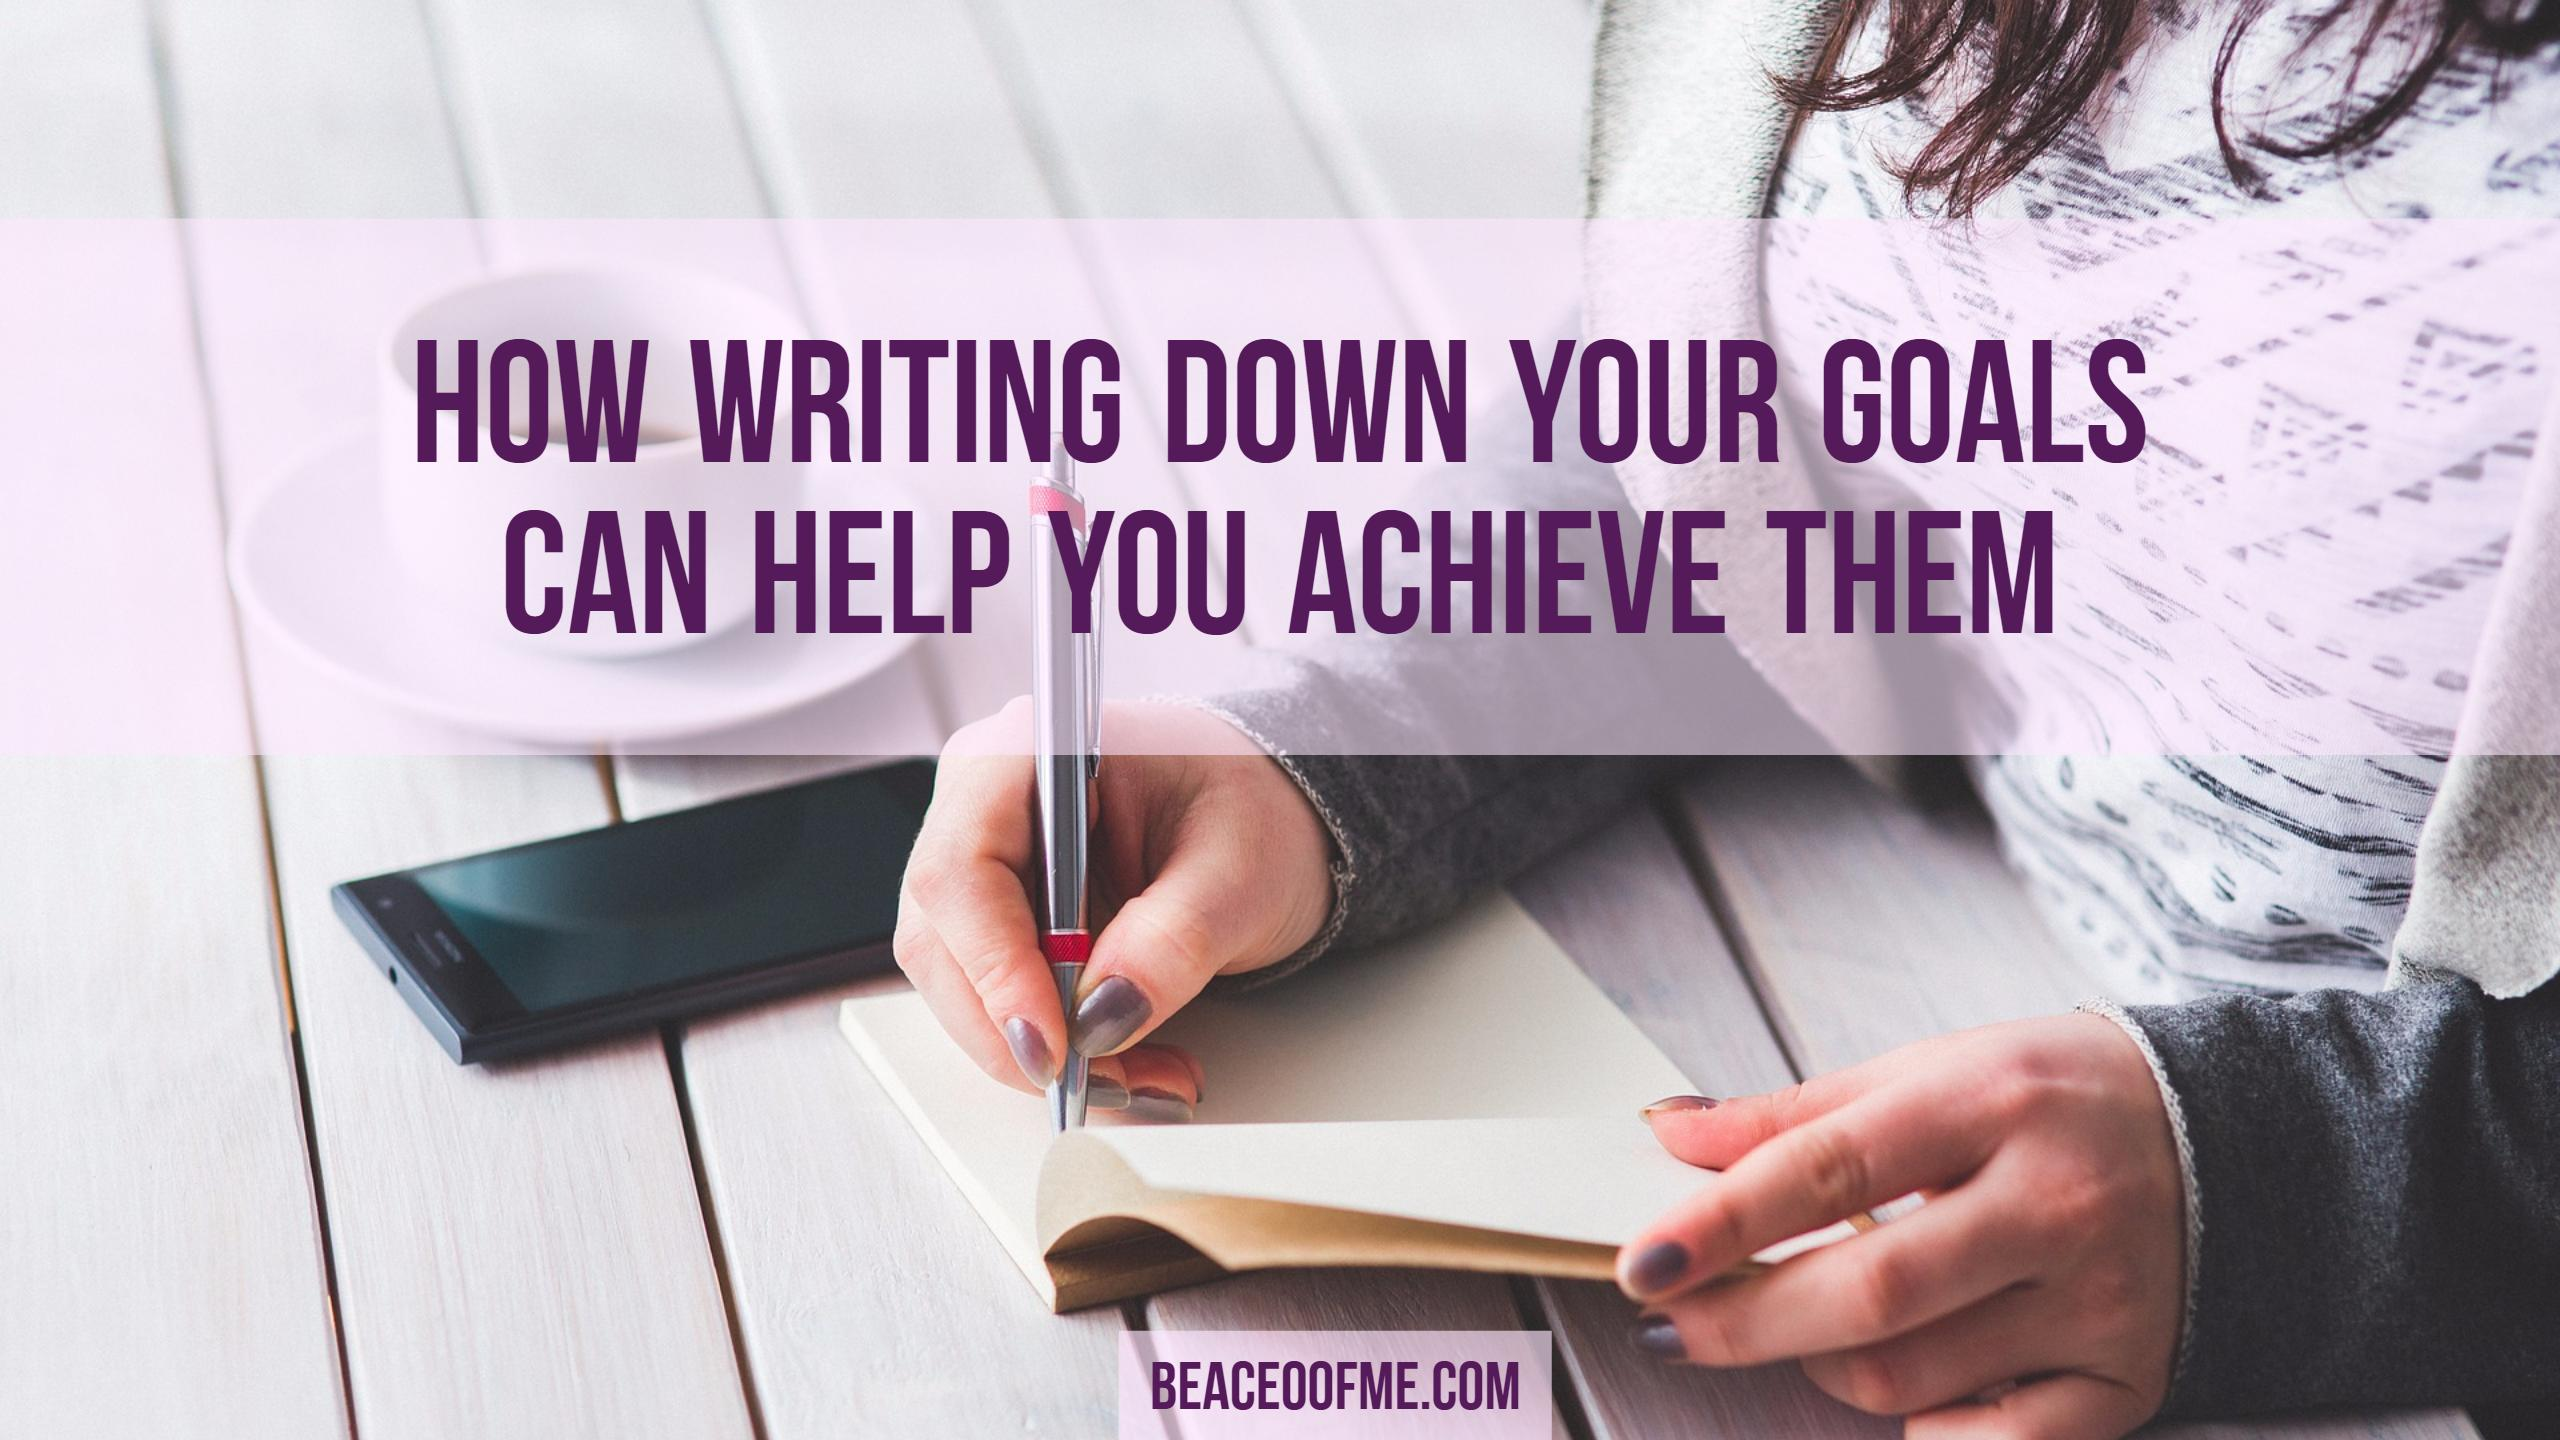 Writing down goals to achieve them